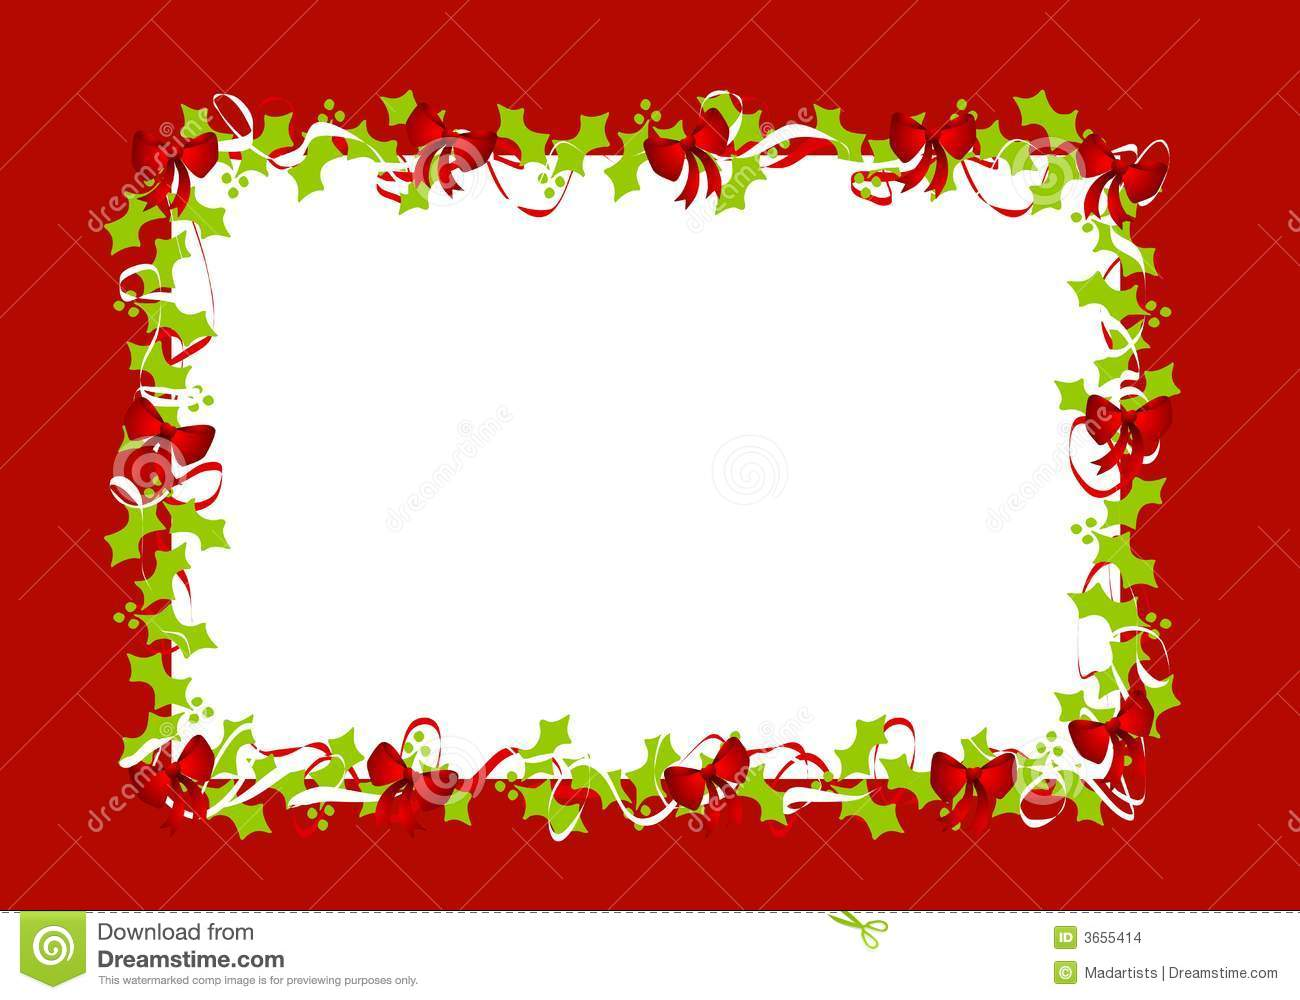 Decorative frames set download free vector art stock graphics - Holly Leaves Red Ribbons Border Frame Stock Images Image